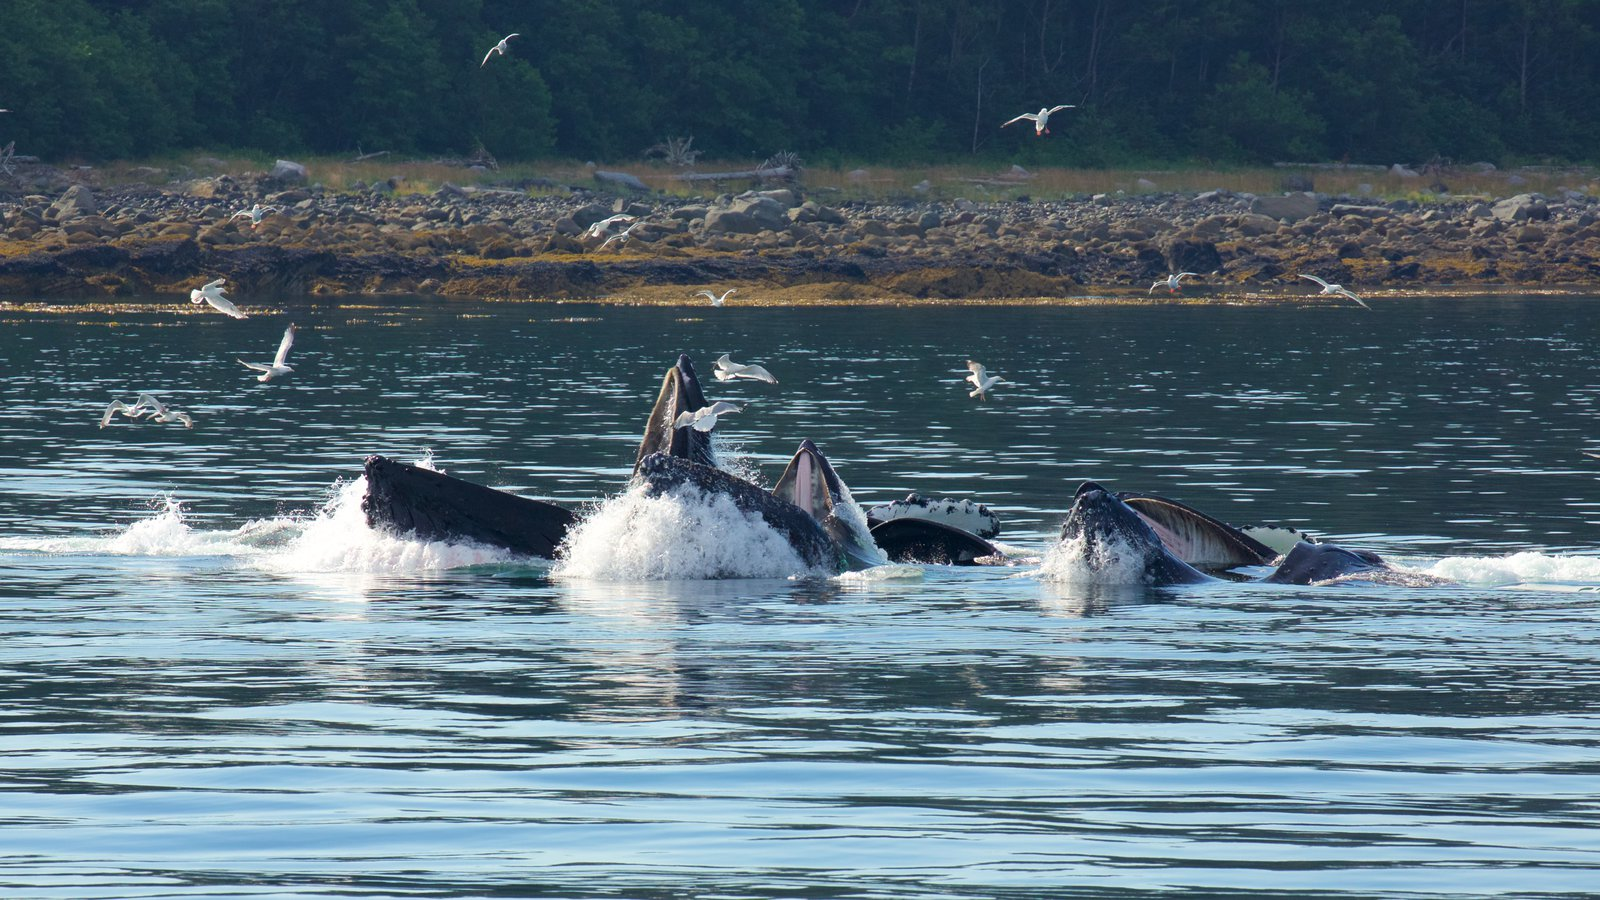 Southeast Alaska - Inside Passage which includes marine life, bird life and general coastal views